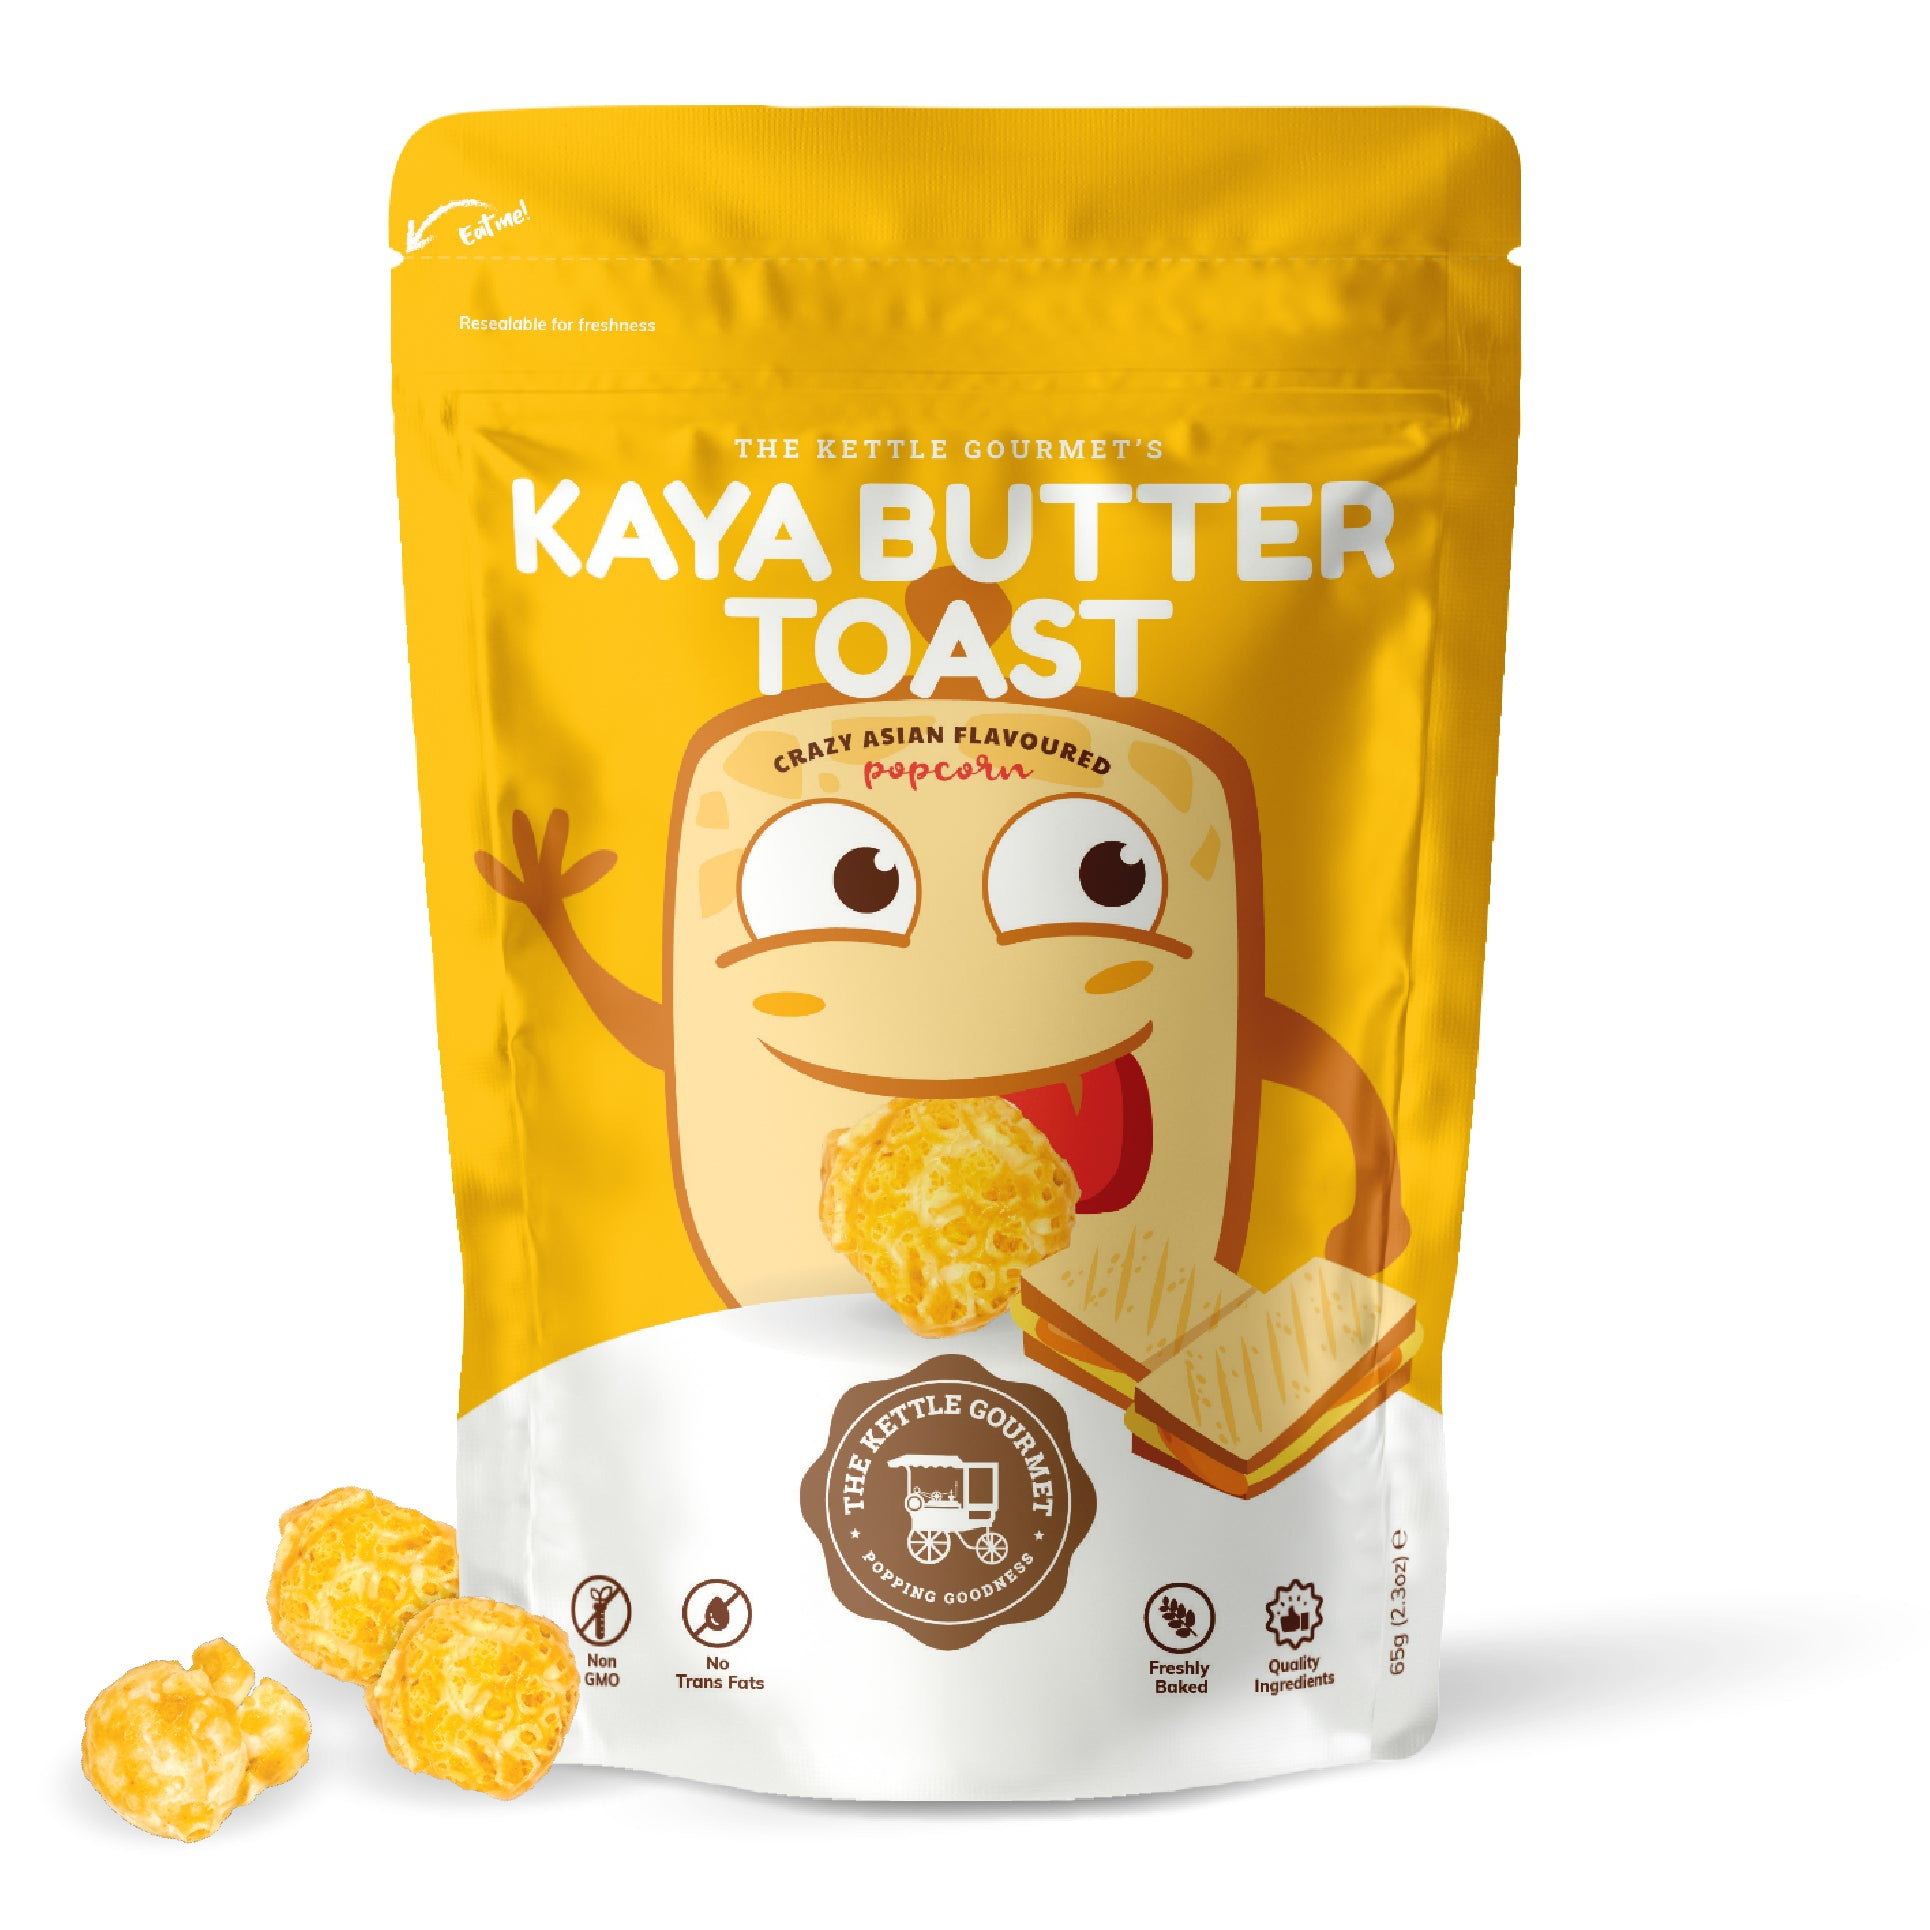 TKG Kaya Butter Toast (Crazy Asian Flavoured Popcorn)